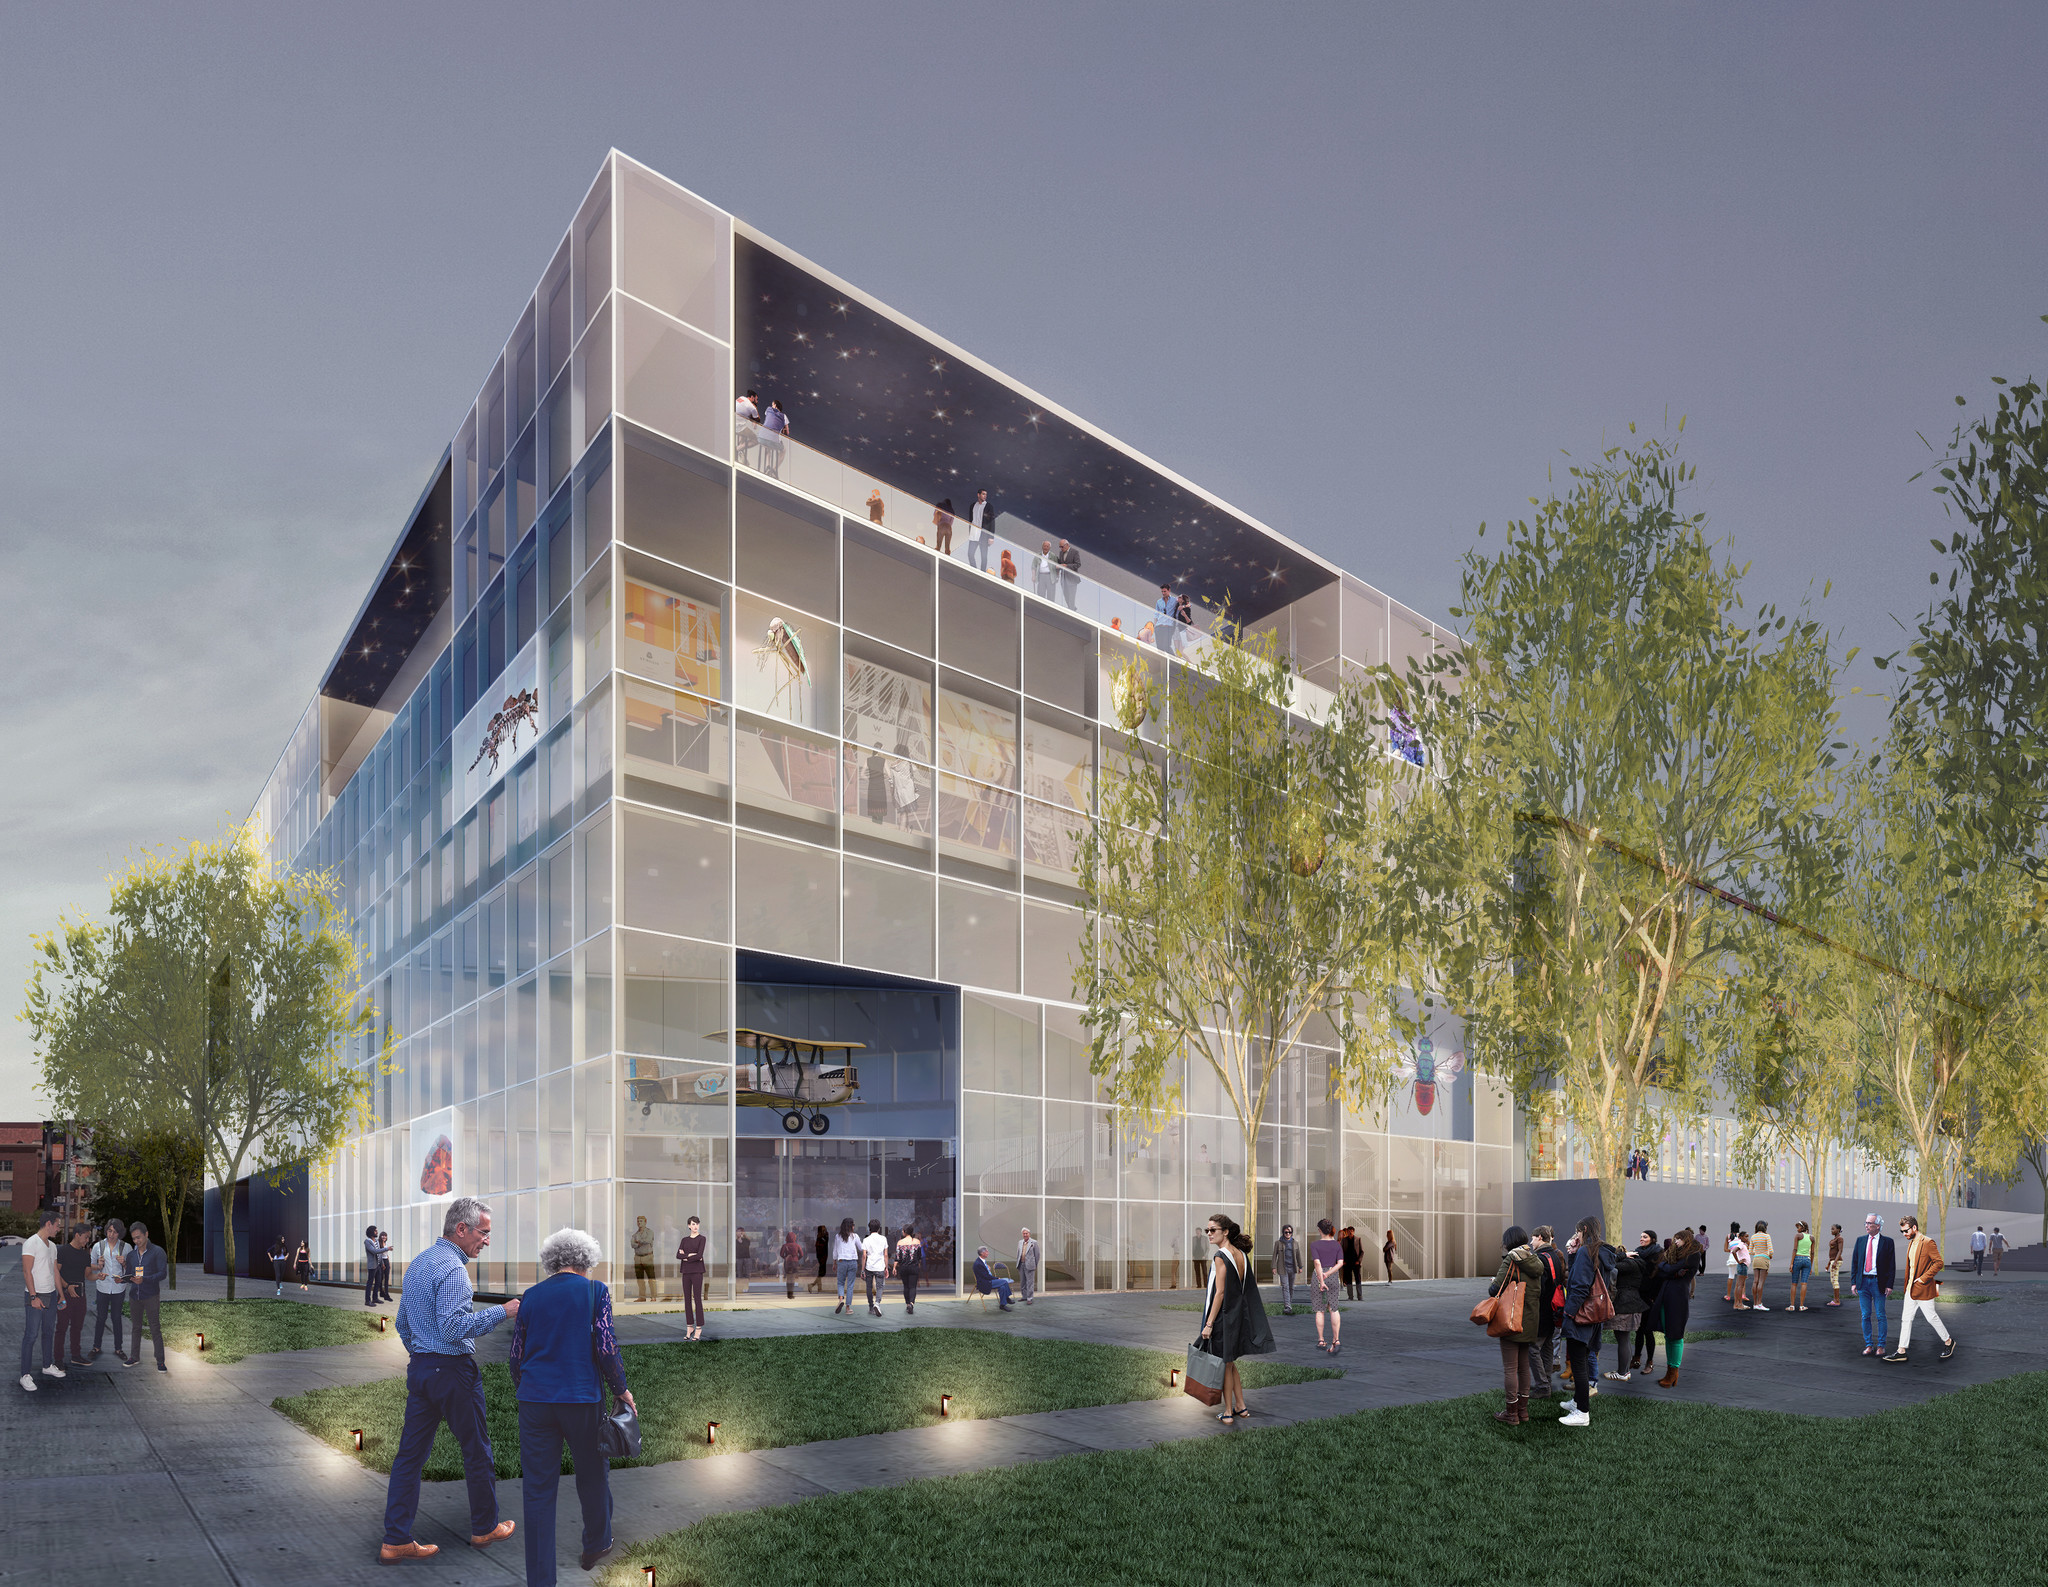 A new three-story glass cube would replace an auditorium used for storage.